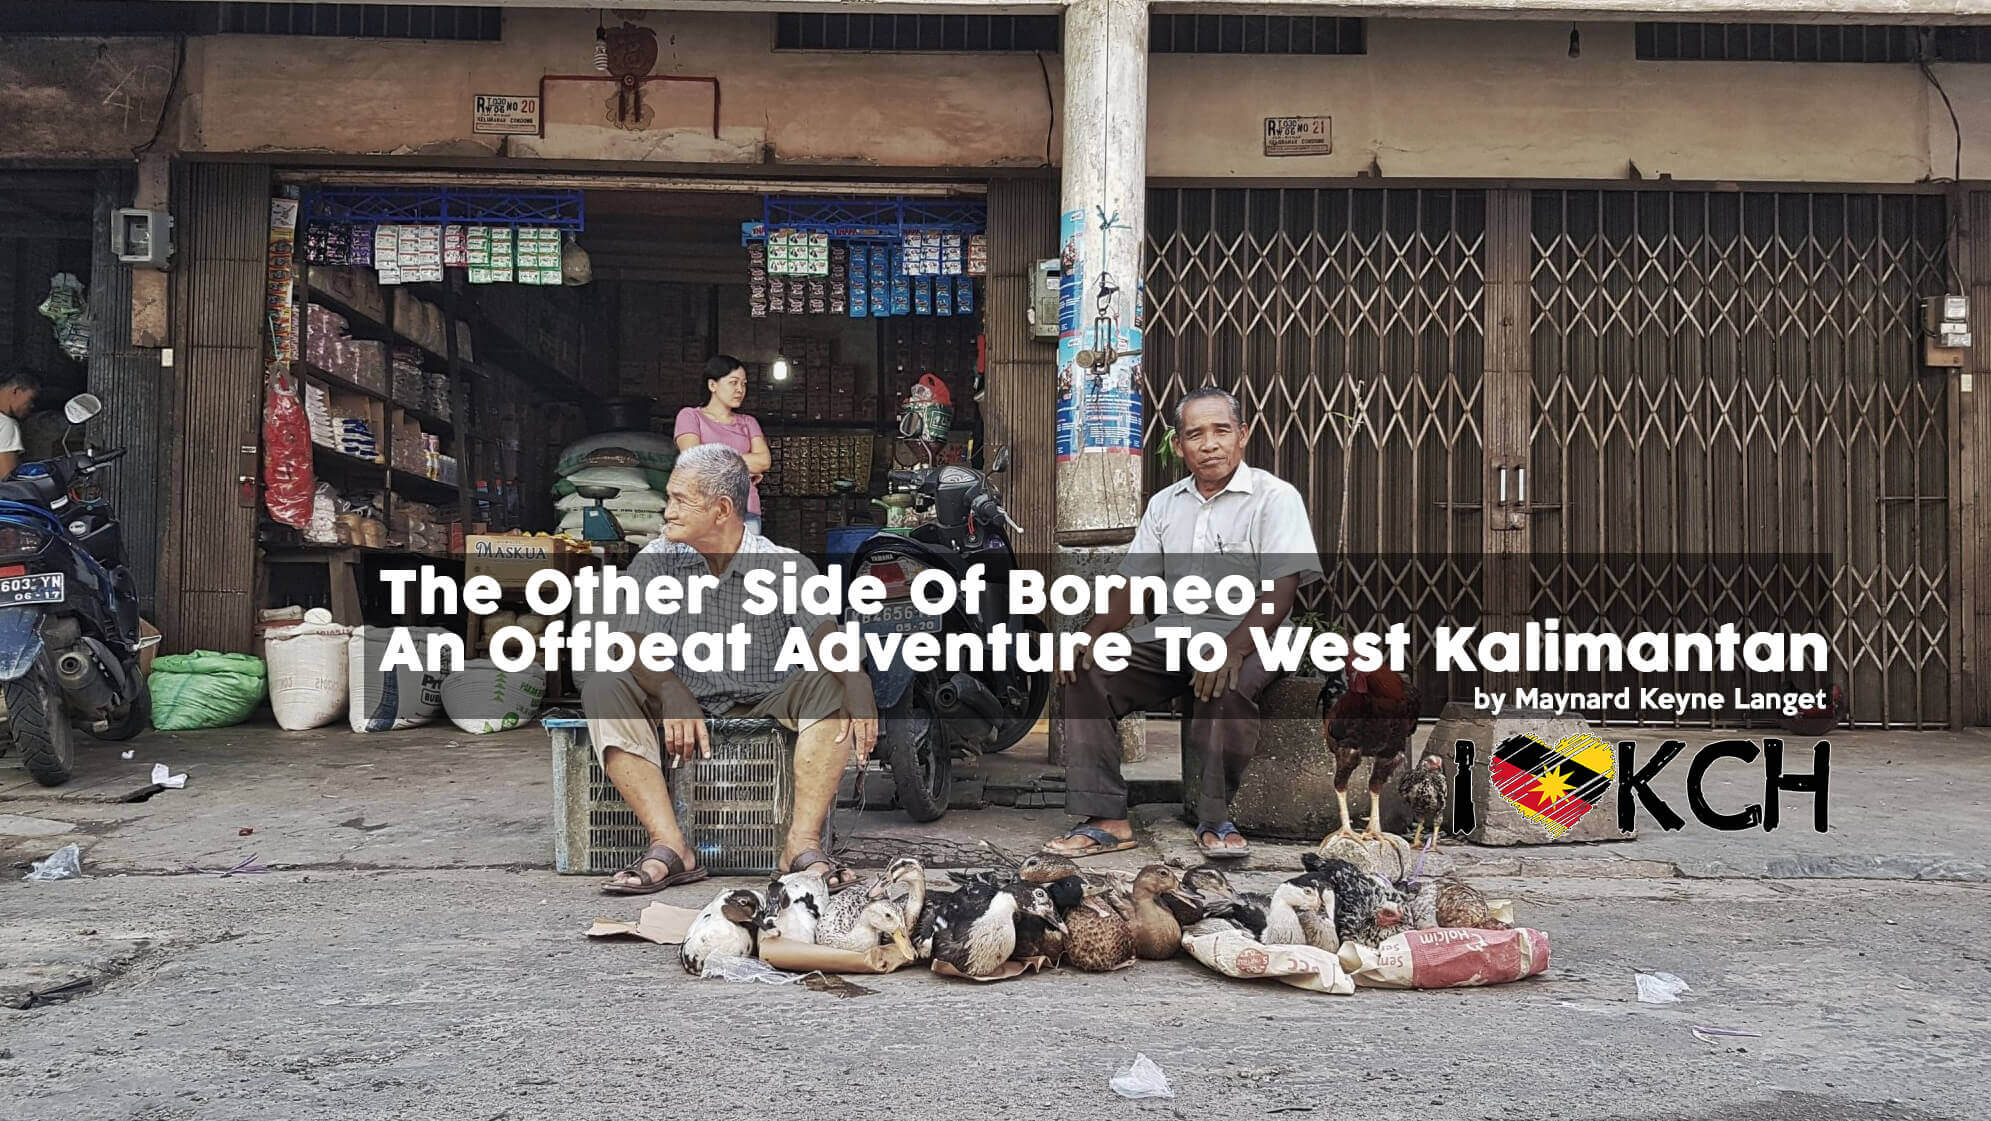 The Other Side Of Borneo: An Offbeat Adventure To West Kalimantan